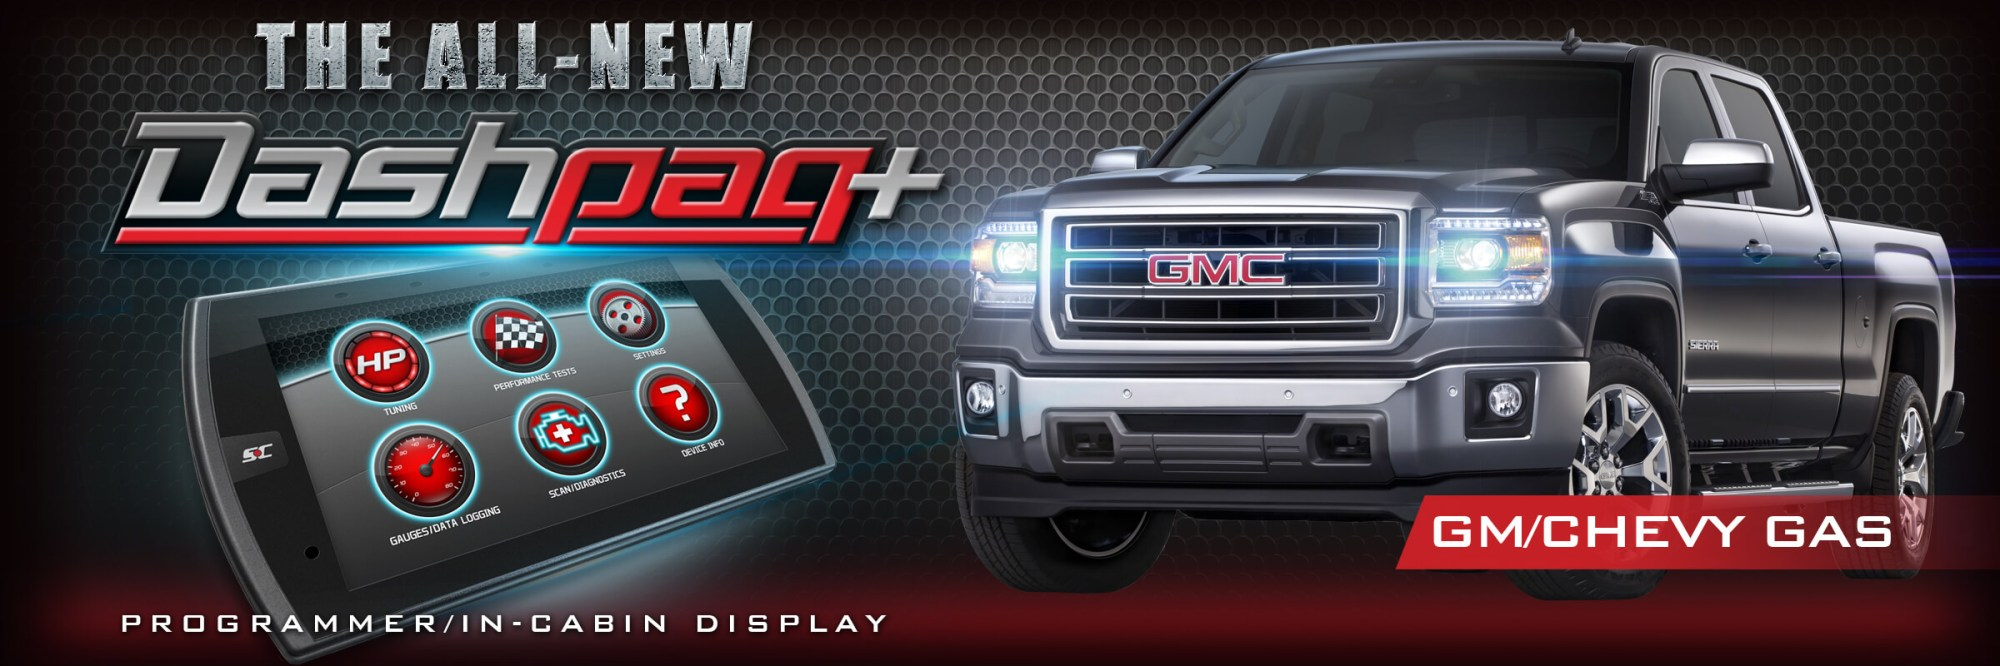 hight resolution of add a silverado tuner or gmc sierra programmer explore performance upgrades from superchips